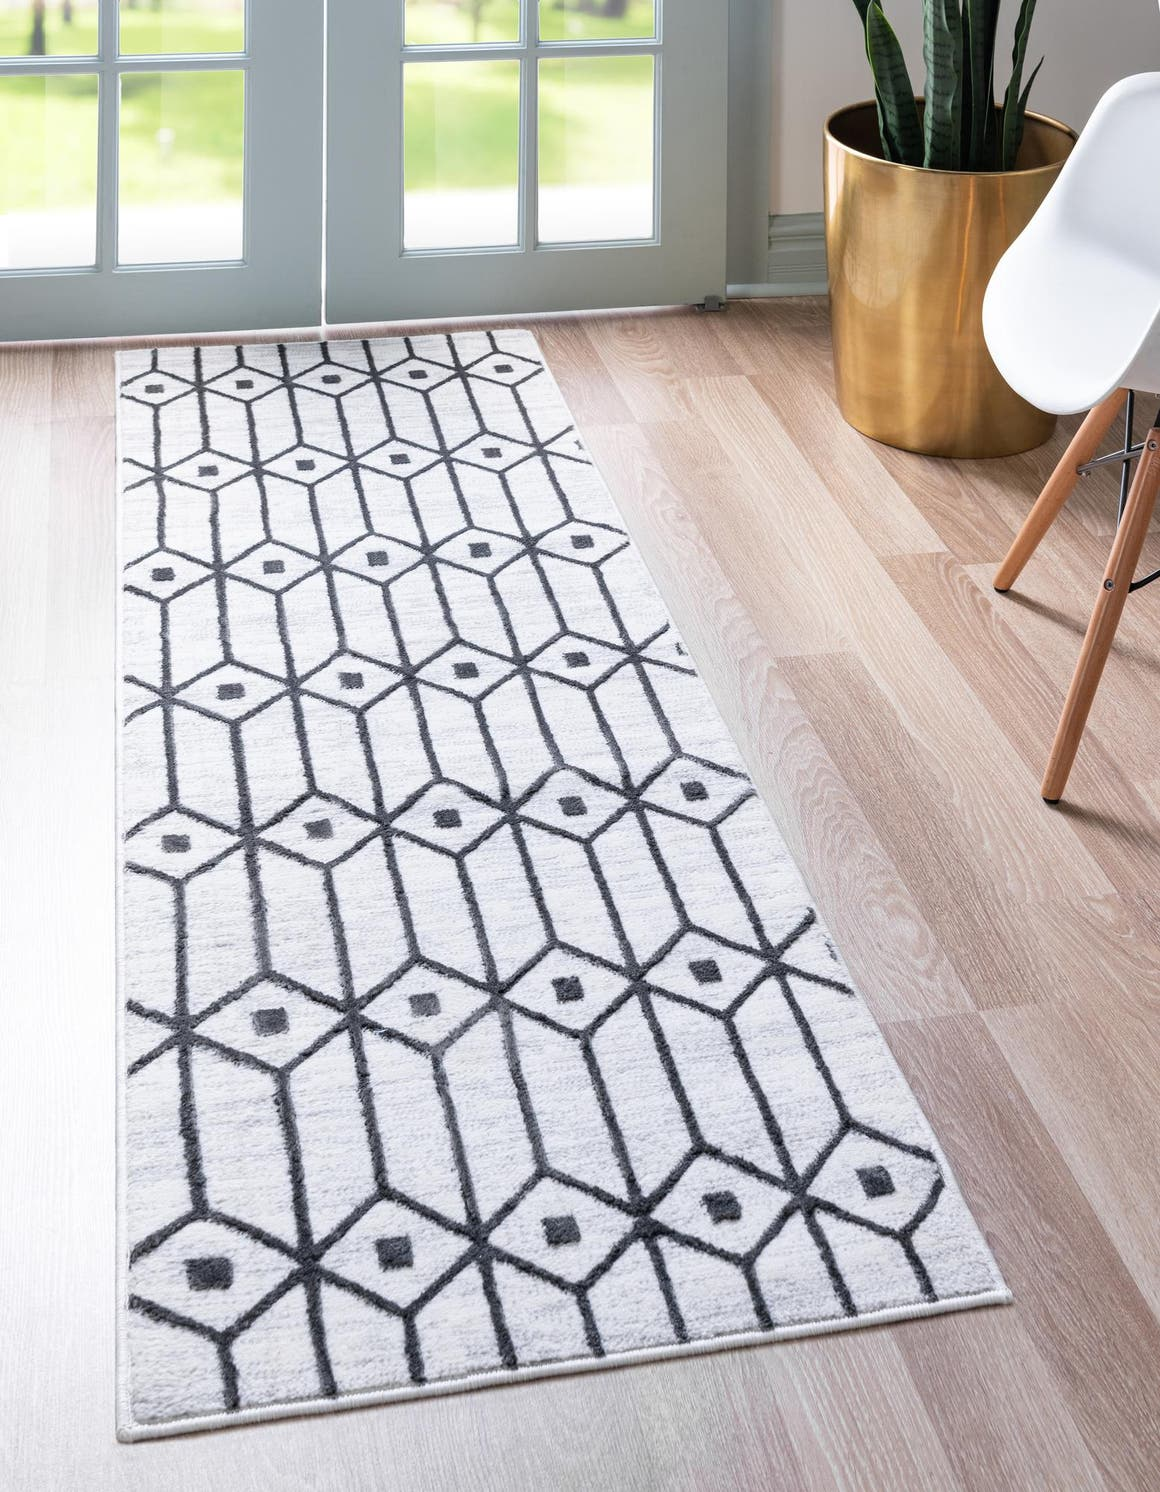 3' x 10' Lattice Trellis Runner Rug main image